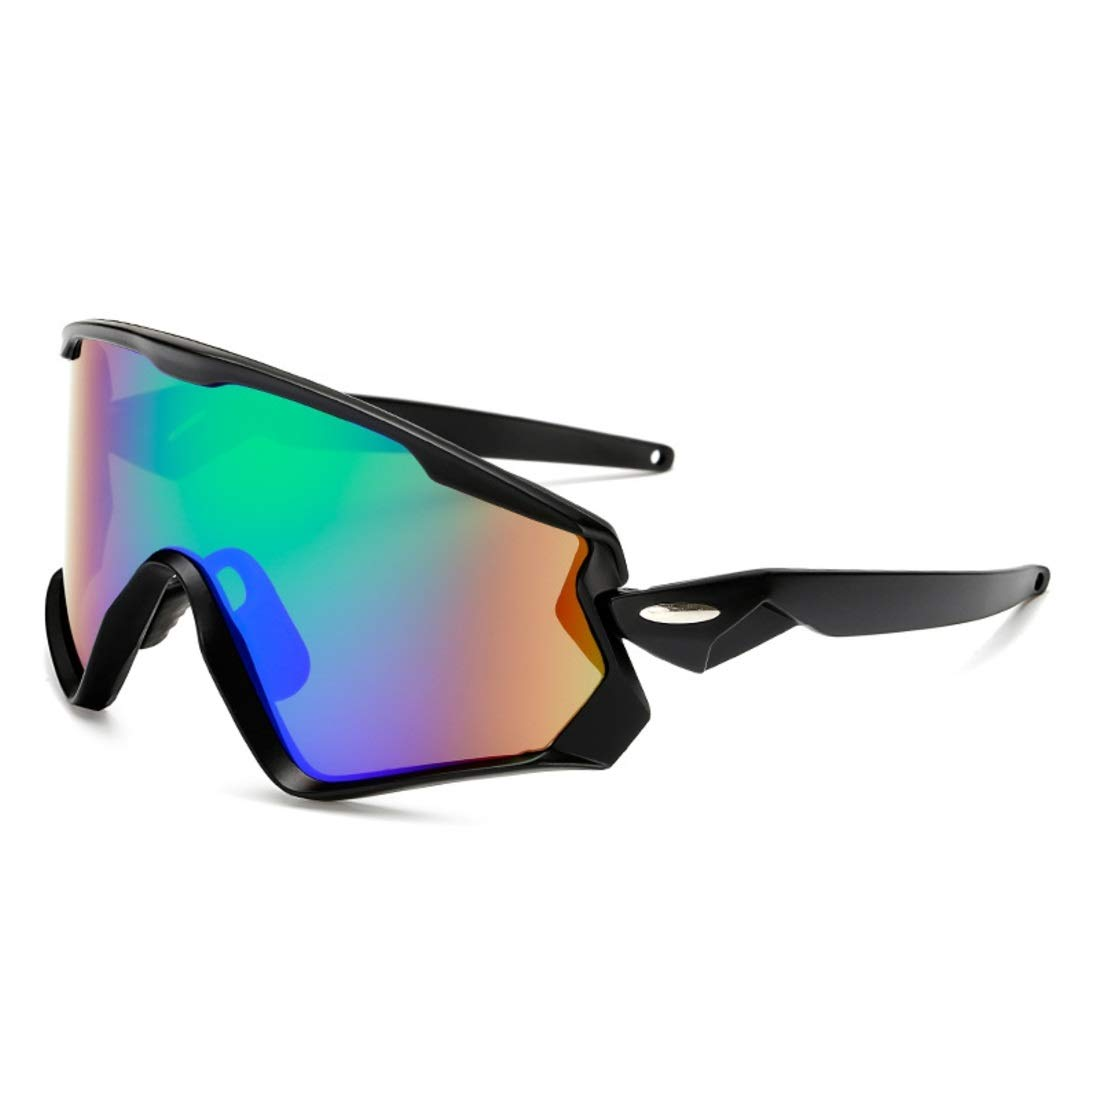 BAOYIT Sports Sunglasses Outdoor Men and Women Sunglasses Riding Wind and Sand Riding Glasses (Color : A) by BAOYIT